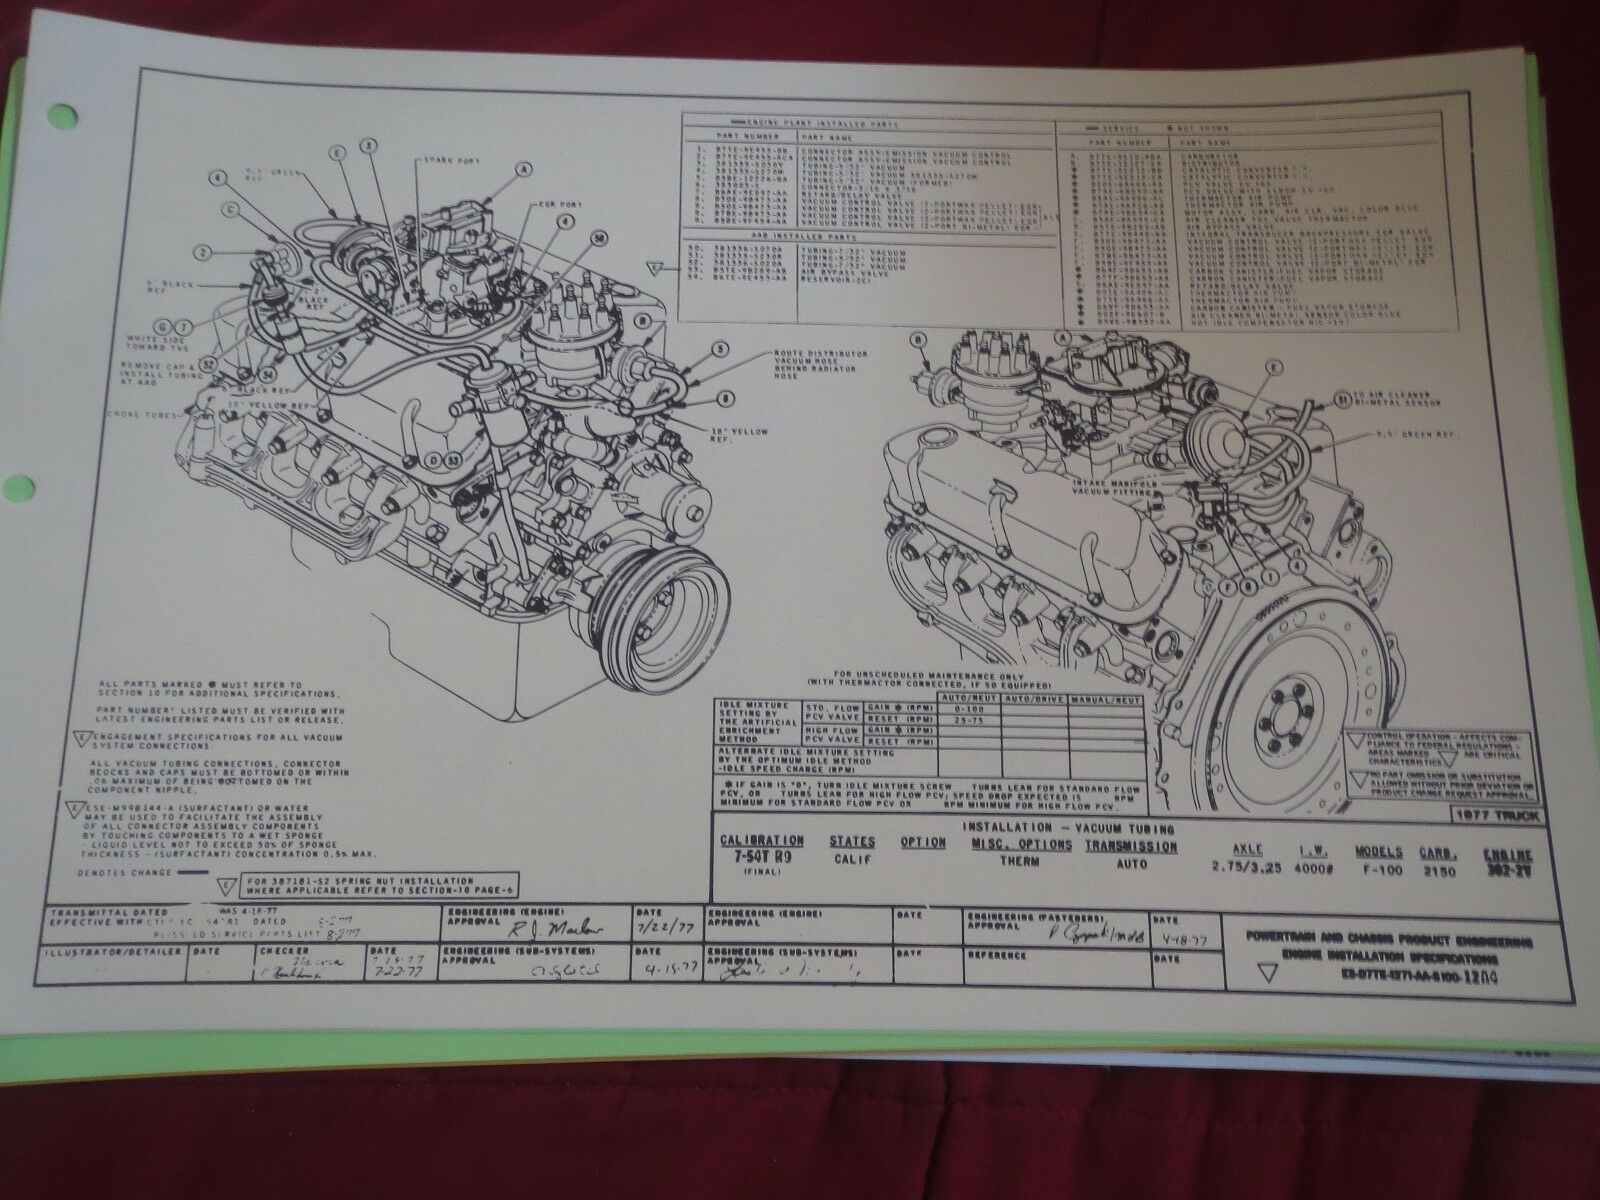 Vacuum Line Diagram 1977 Ford 302 Electrical Wiring Diagrams For A 1975 F100 5 0 Schematic 1983 F 150